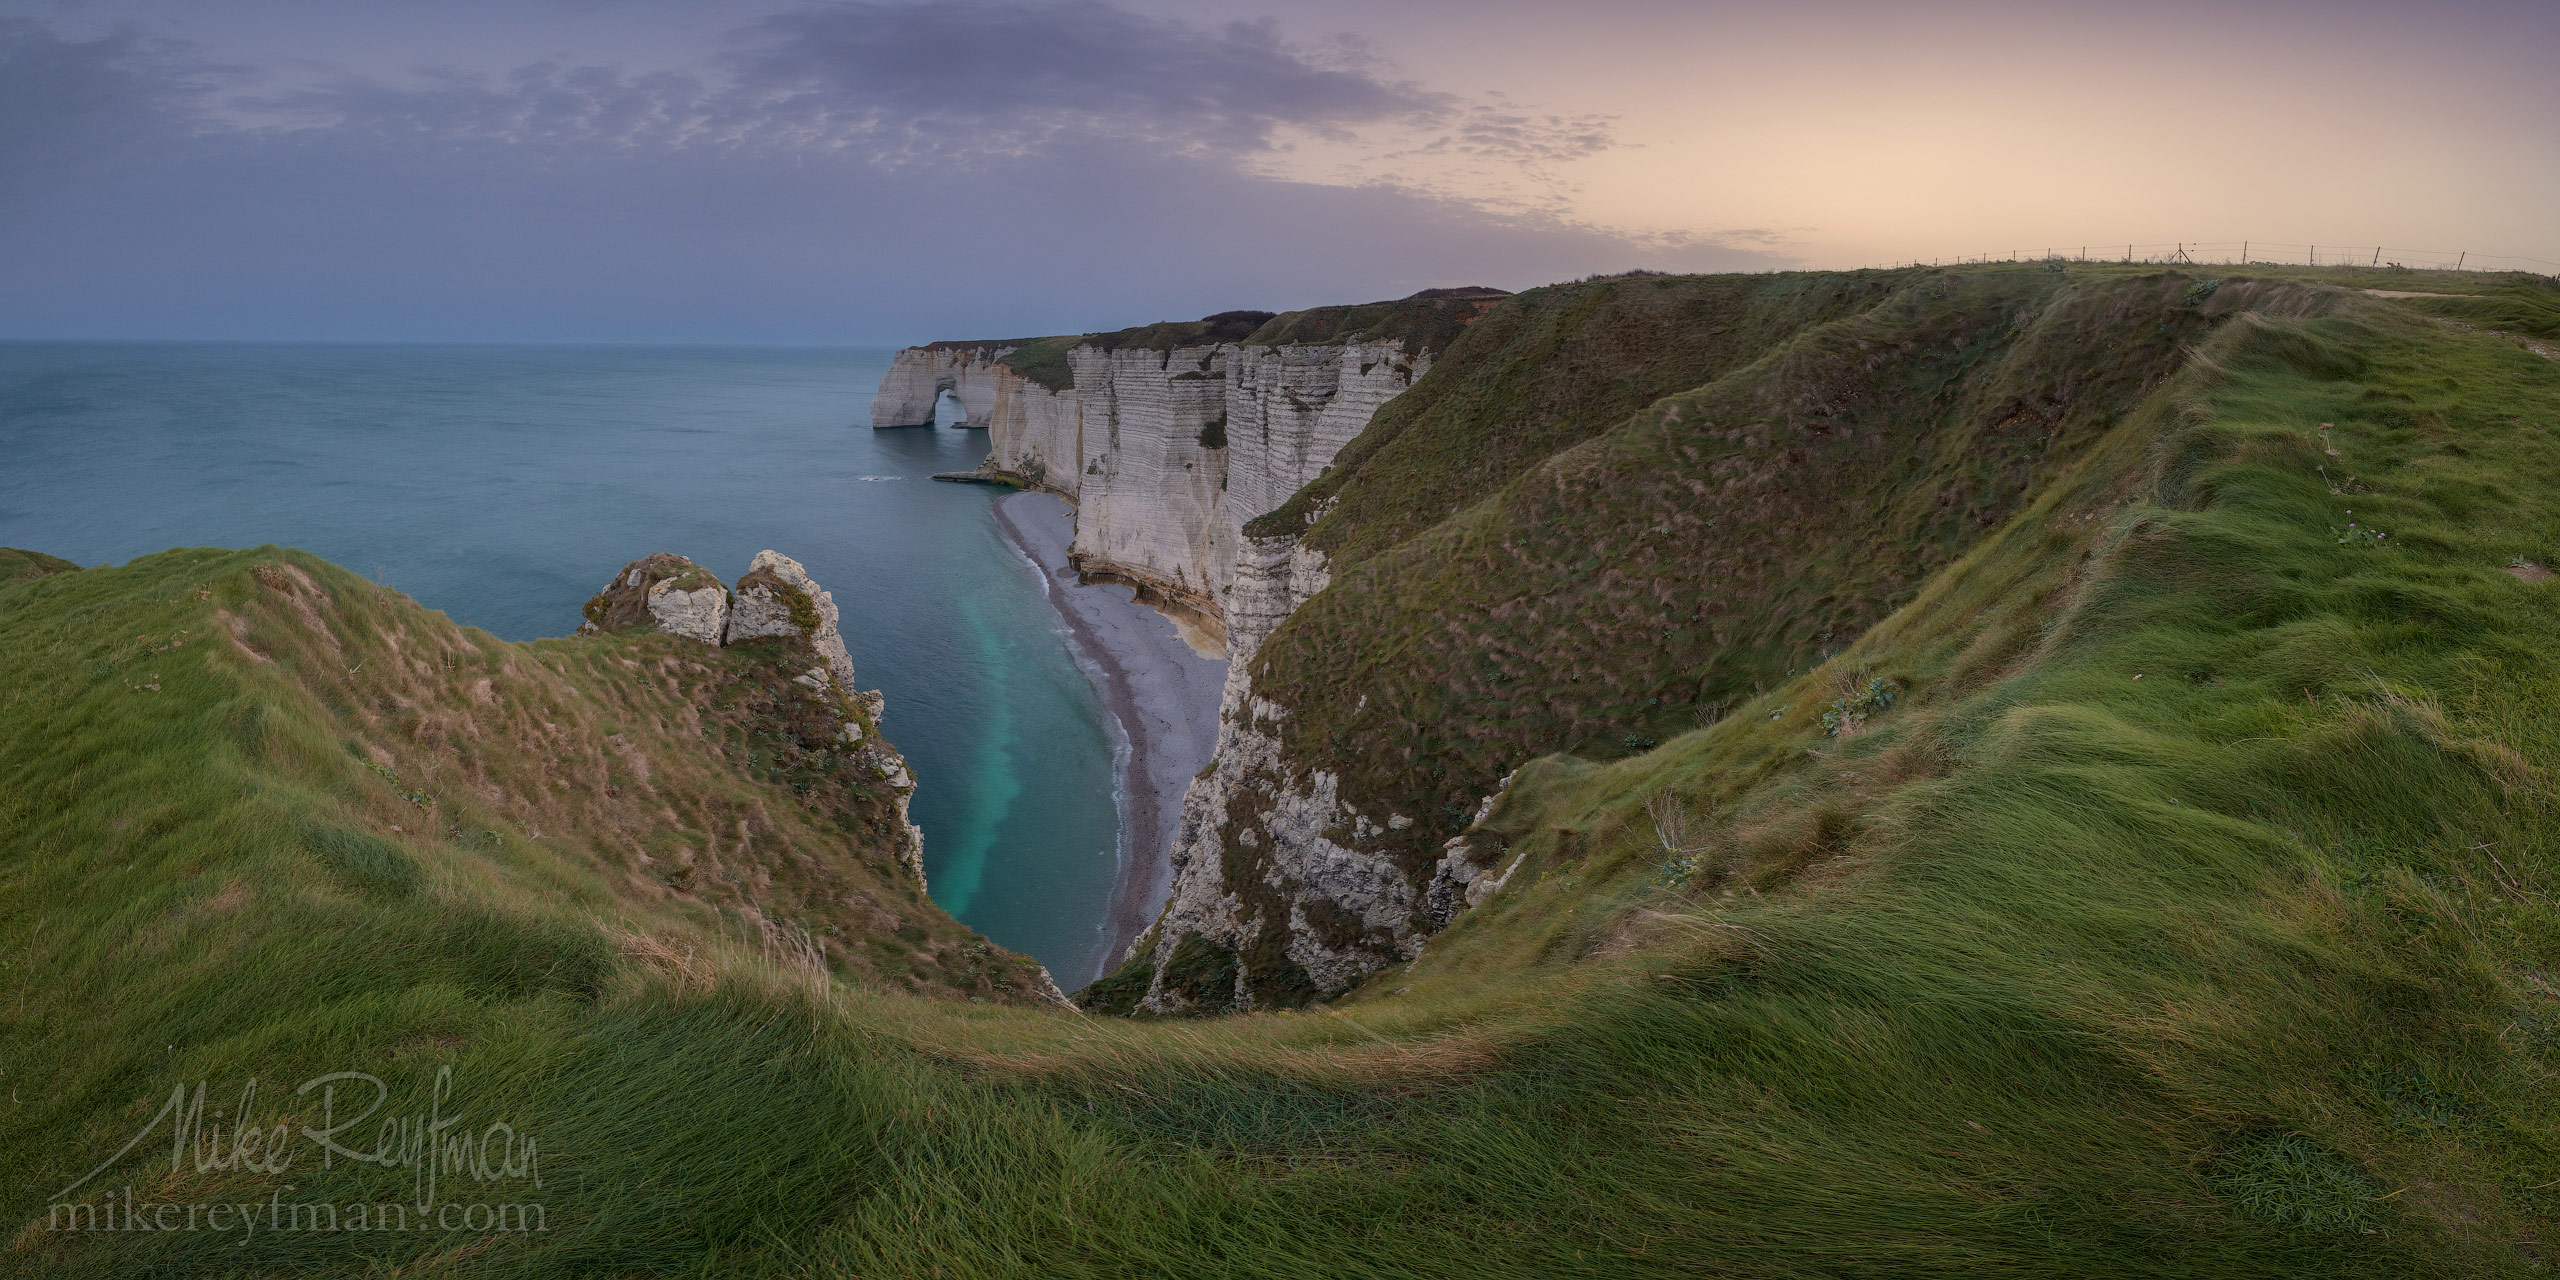 Manneporte Arch. Cote d'Albatre – The Alabaster Coast. Ertretat, Normandy, France ET1-MR50A0382 Pano: 2x1 - White Chalk Cliffs and Arches of Alabaster Coast. Etretat, Upper Normandy, France - Mike Reyfman Photography